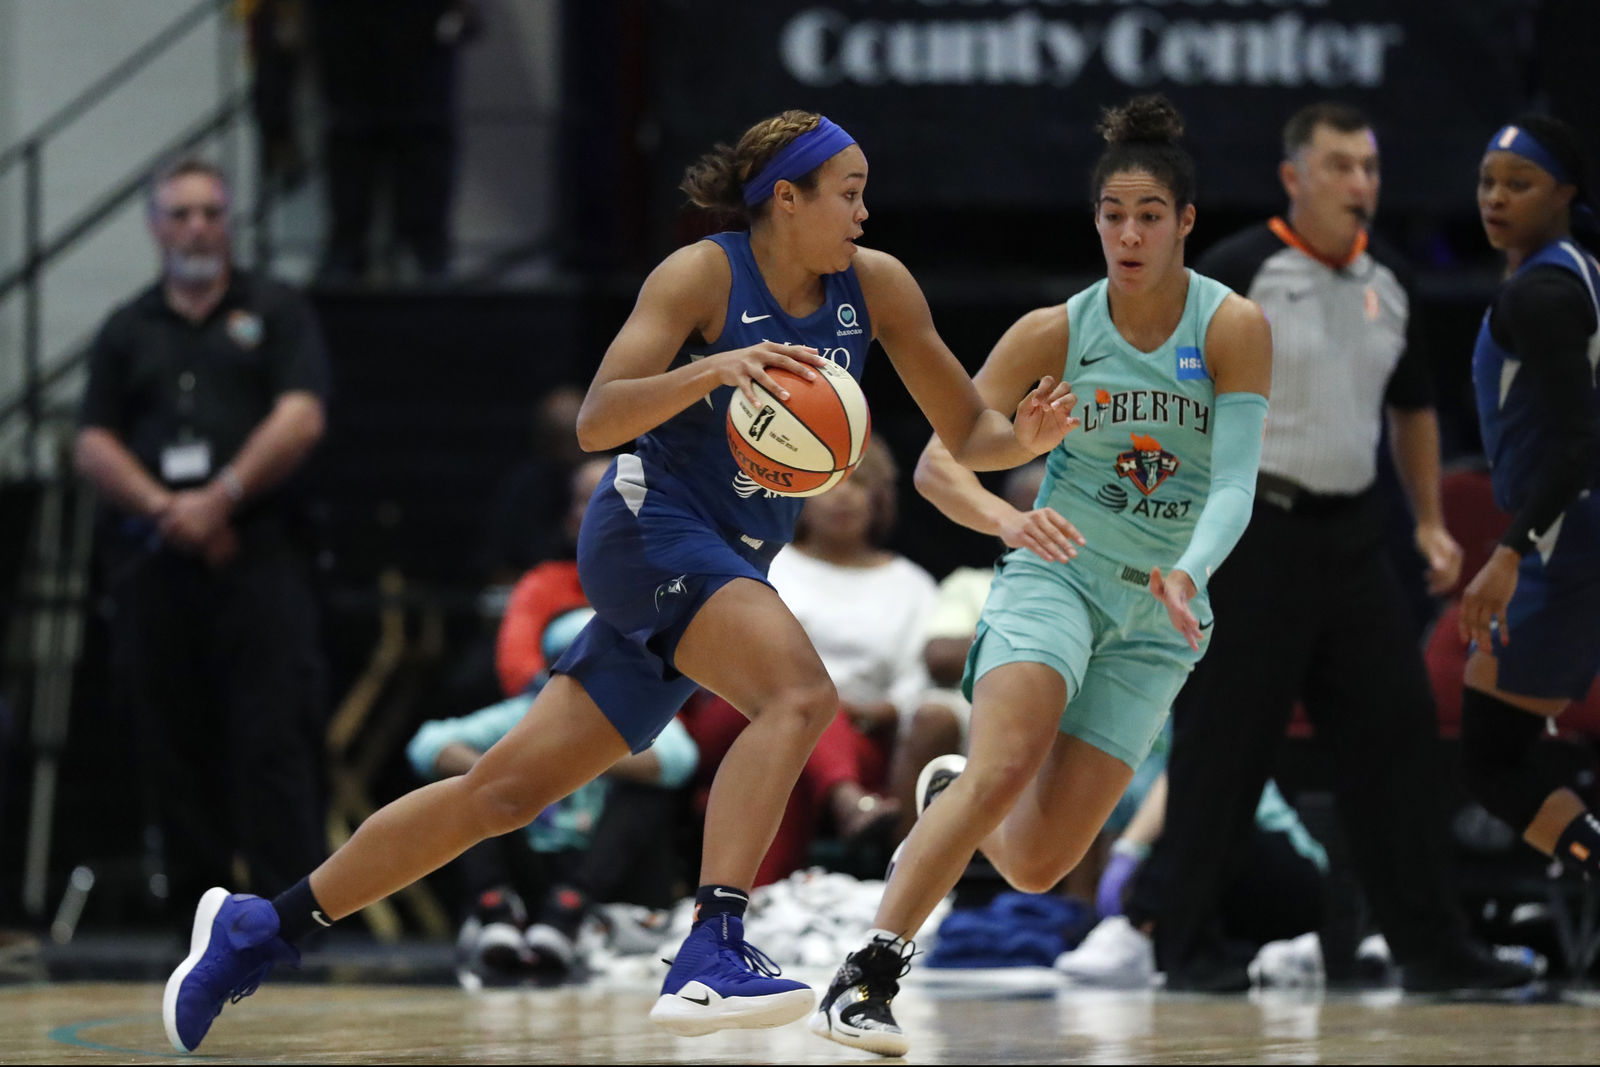 Minnesota Lynx forward Napheesa Collier, left, drives toward the basket with New York Liberty guard Kia Nurse (5) defending during the first half of a WNBA basketball game Tuesday, Aug. 13, 2019, in White Plains, N.Y. (AP Photo/Kathy Willens)